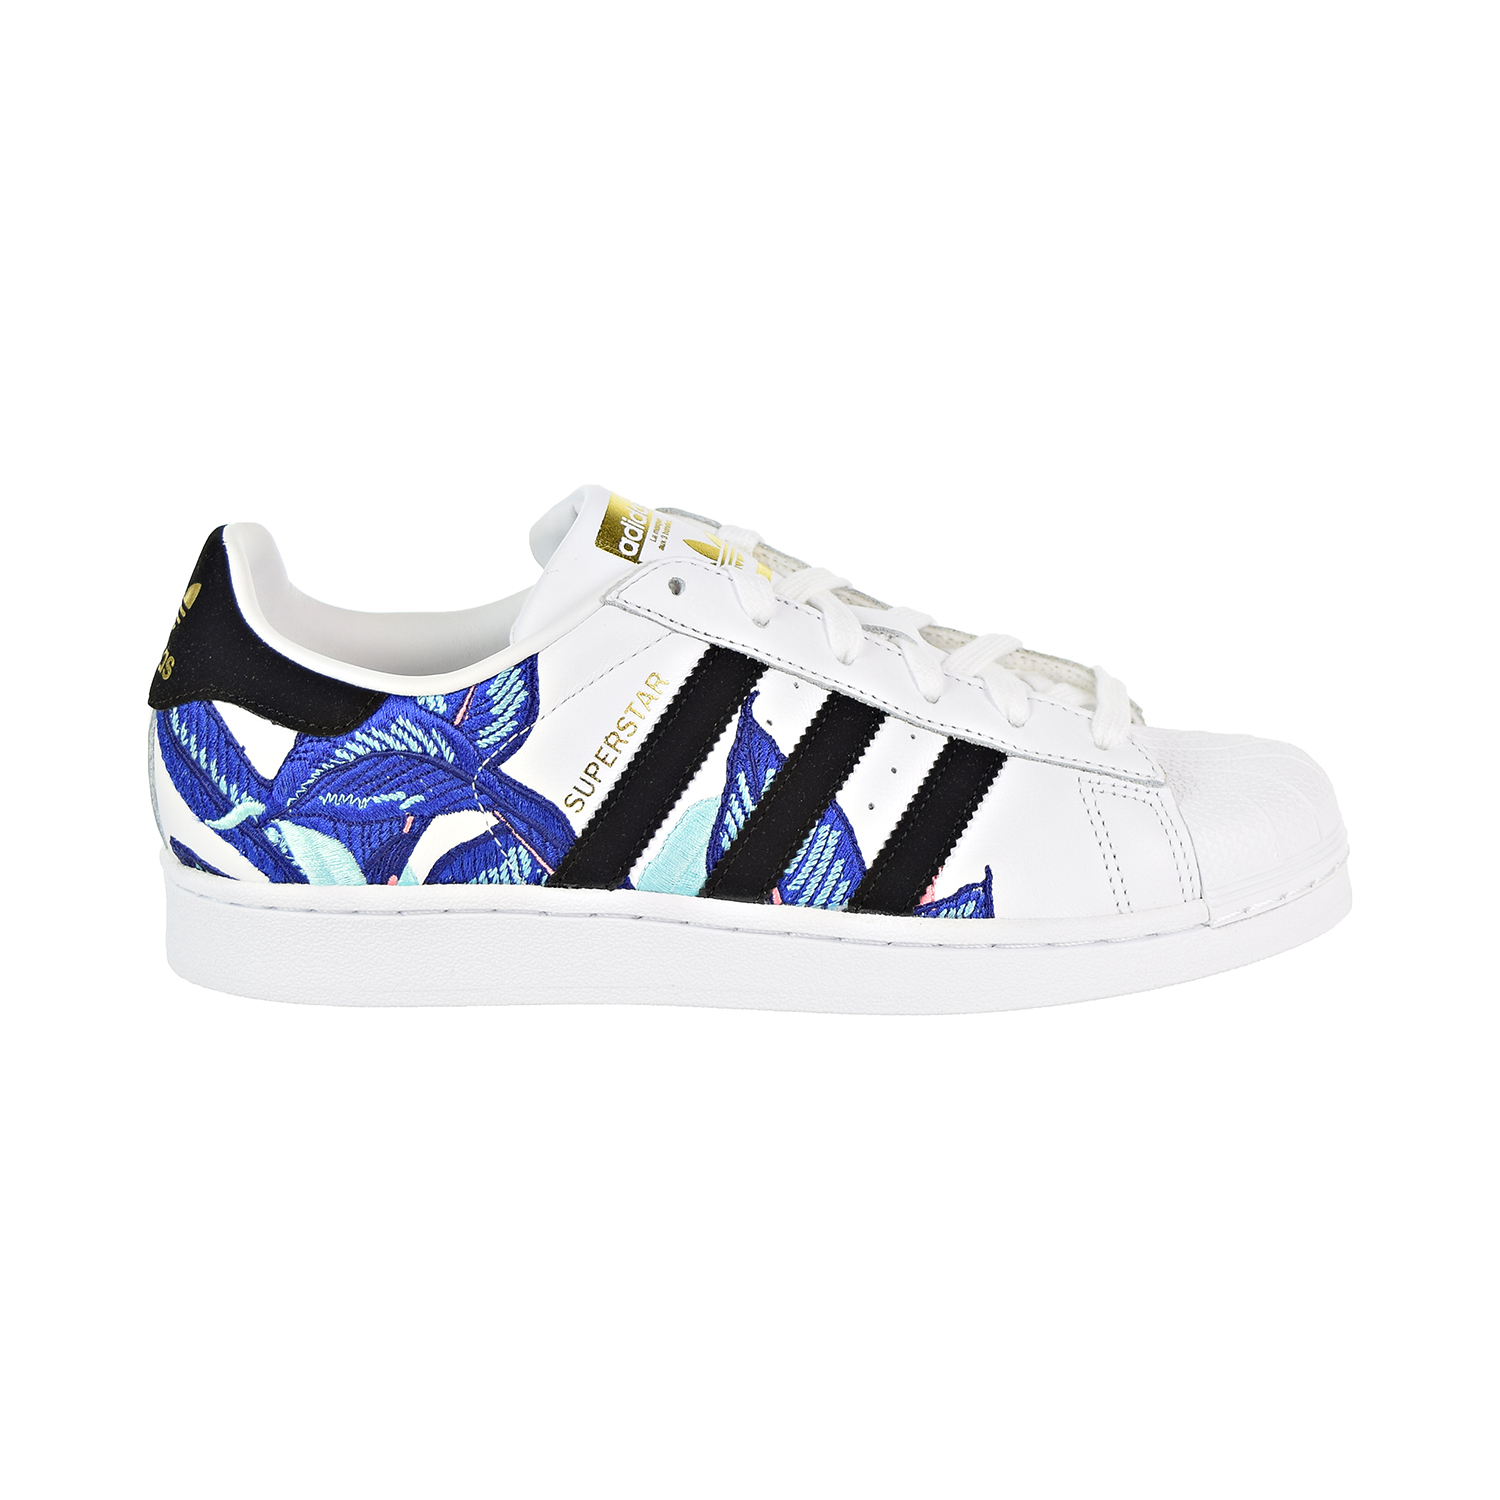 951471aed5d Details about Adidas Superstar Women's Shoes White/Black/Blue B28014